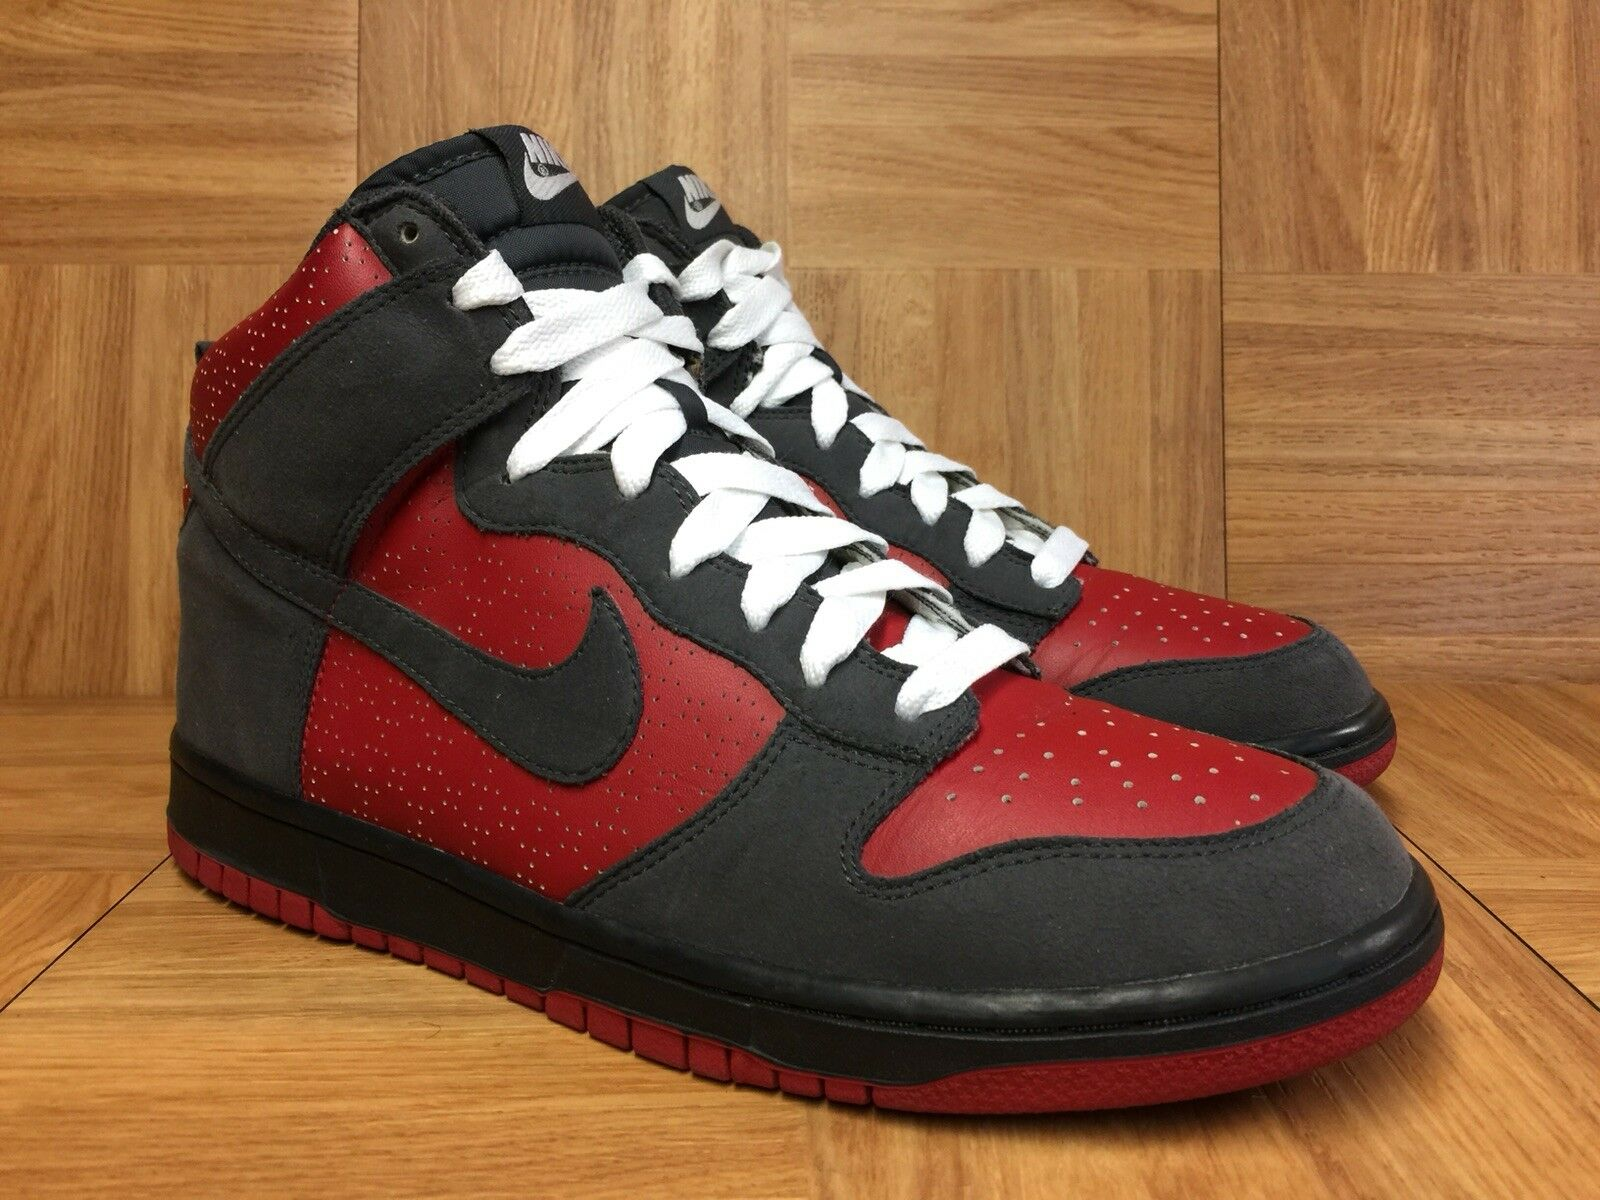 RARE Nike Dunk High Varsity Red Anthracite Suede White 9 317982-601 ULTRAMAN